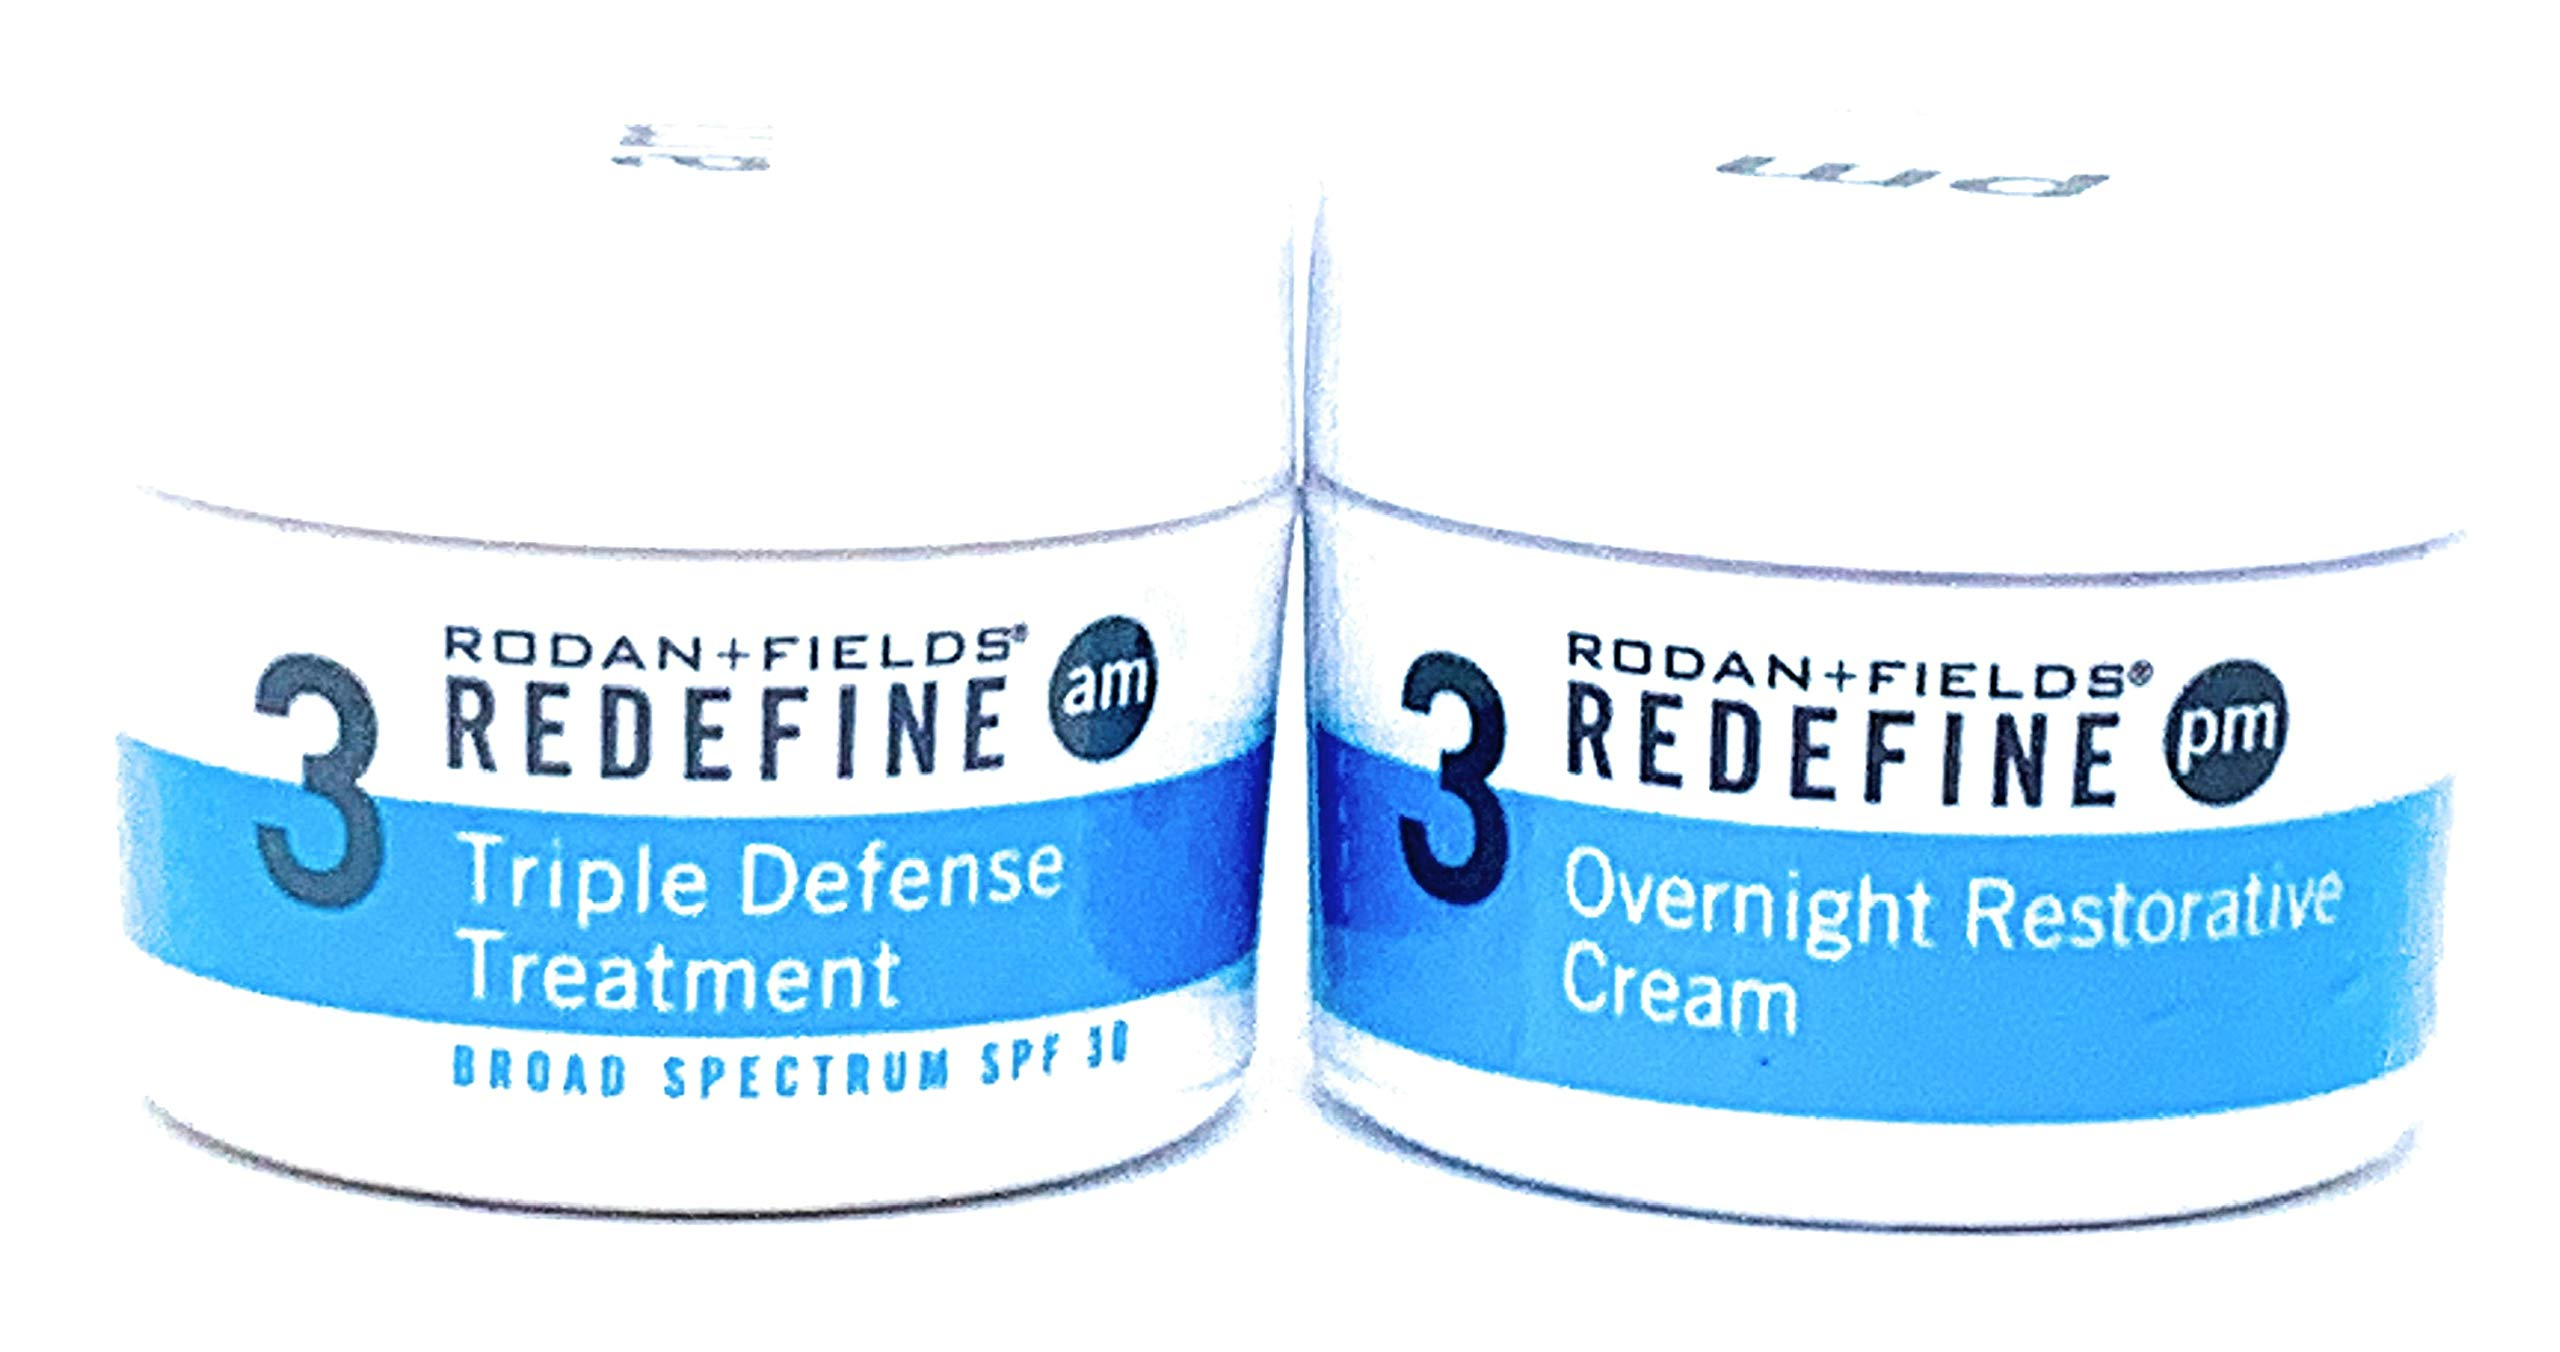 Rodan + Fields Redefine Triple Defense AM & Overnight Restorative Cream Bundle by